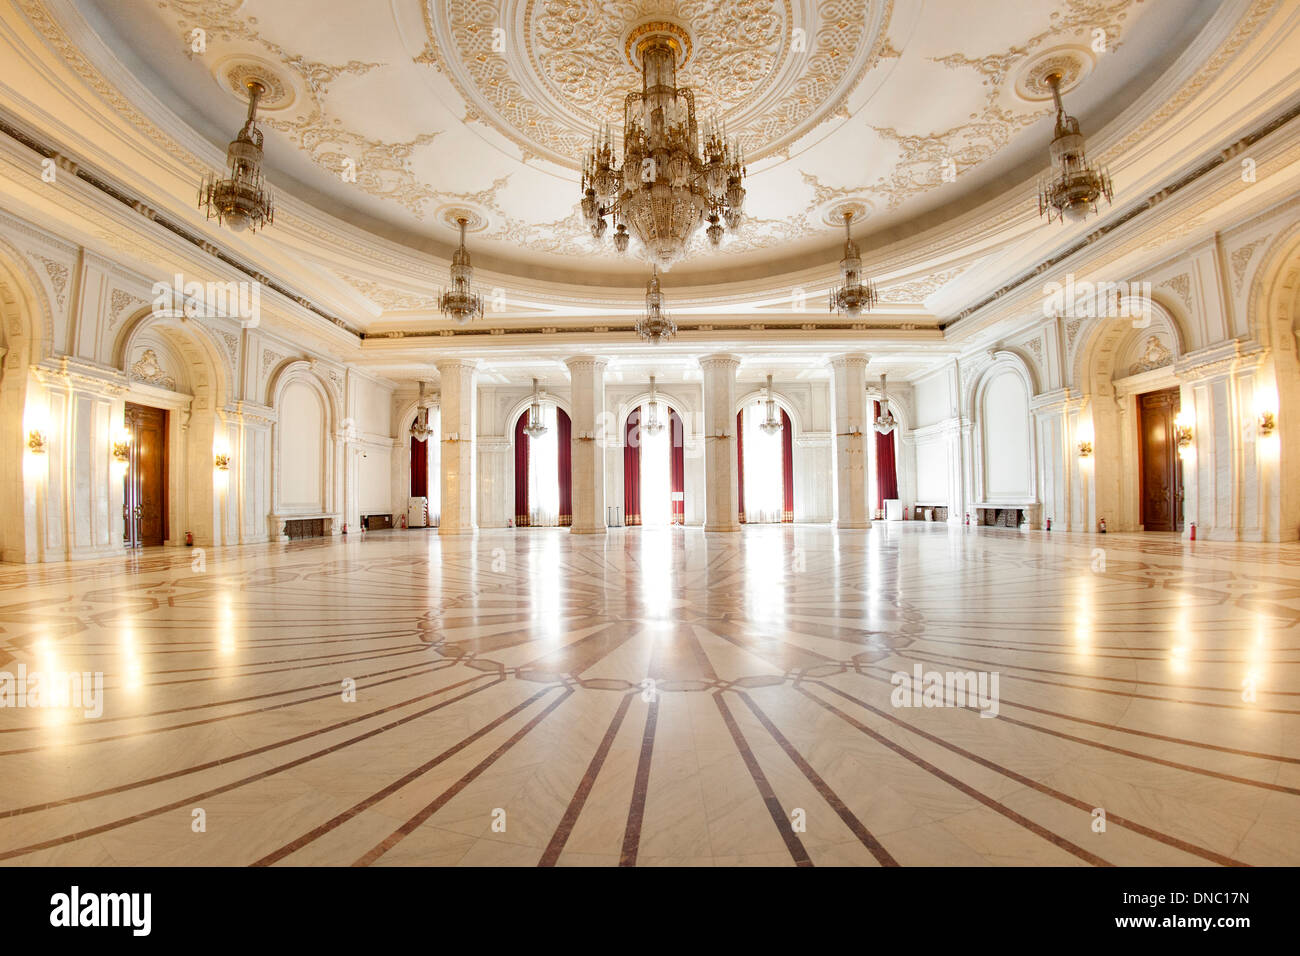 One of the numerous halls the Palace of the Parliament in Bucharest, the capital of Romania. - Stock Image